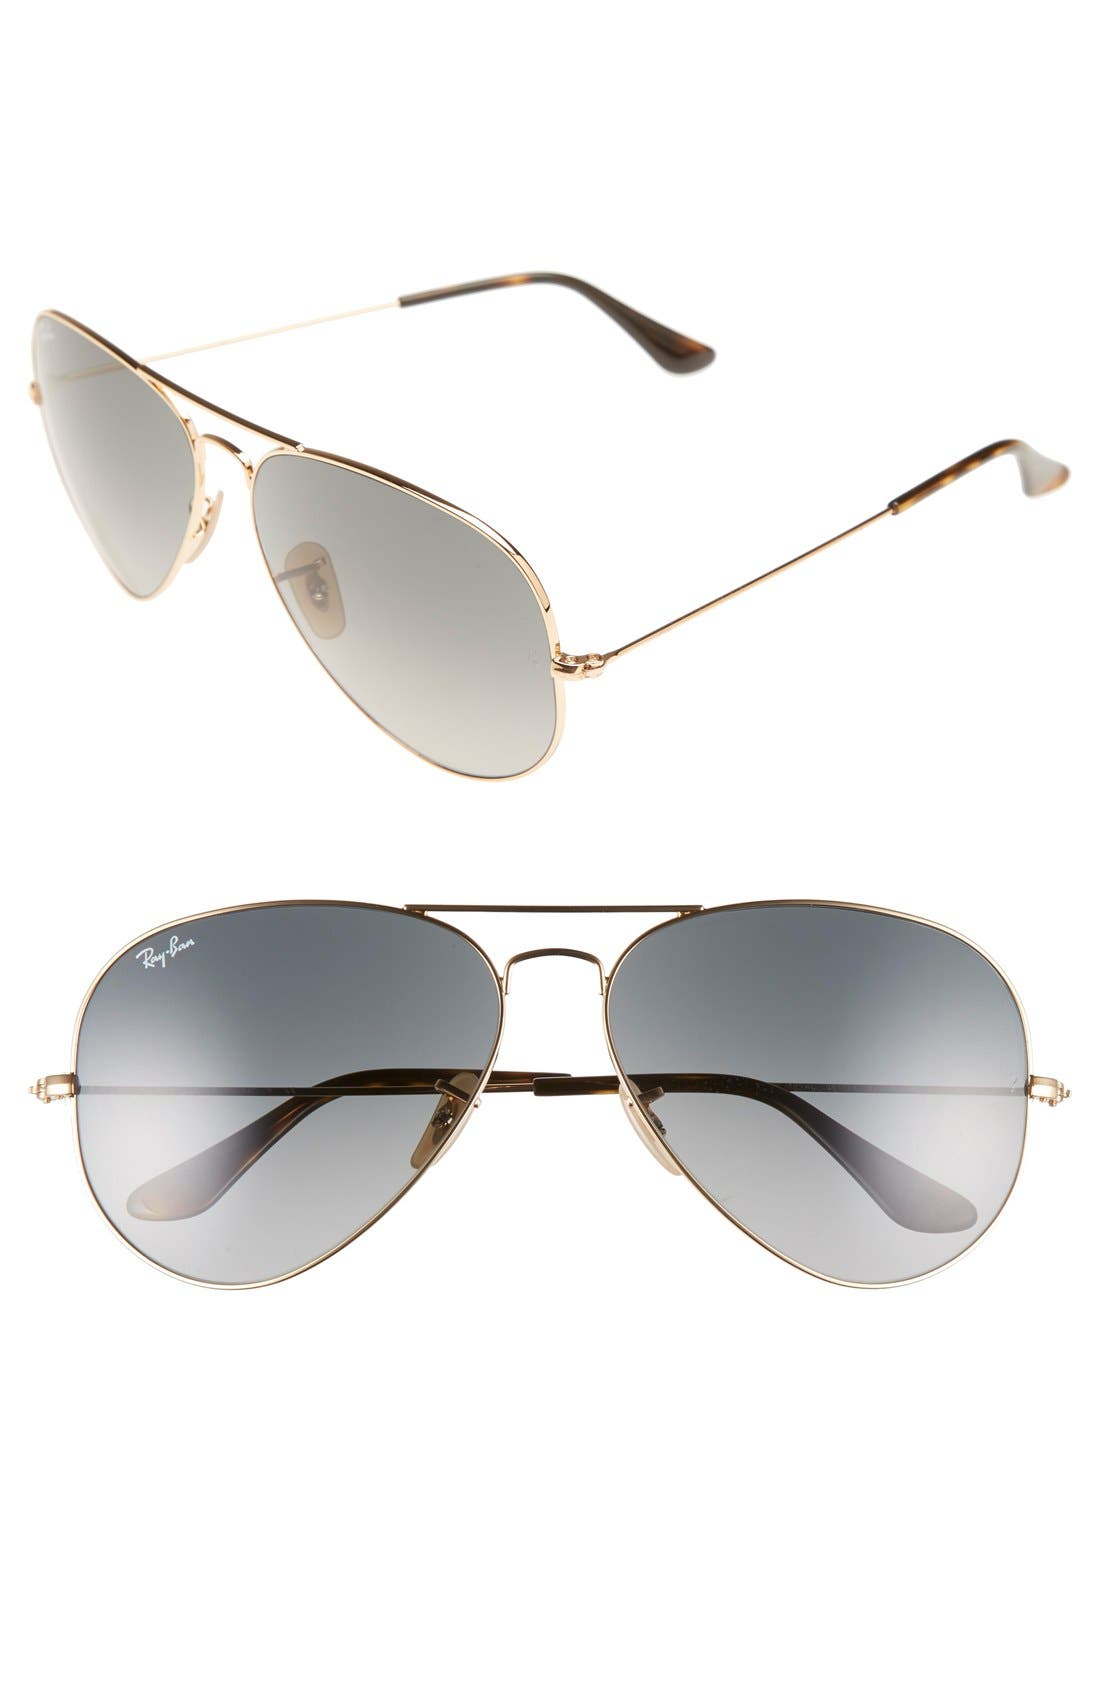 'Org Aviator' 62mm Sunglasses,                             Main thumbnail 1, color,                             GOLD/ GREY GRADIENT